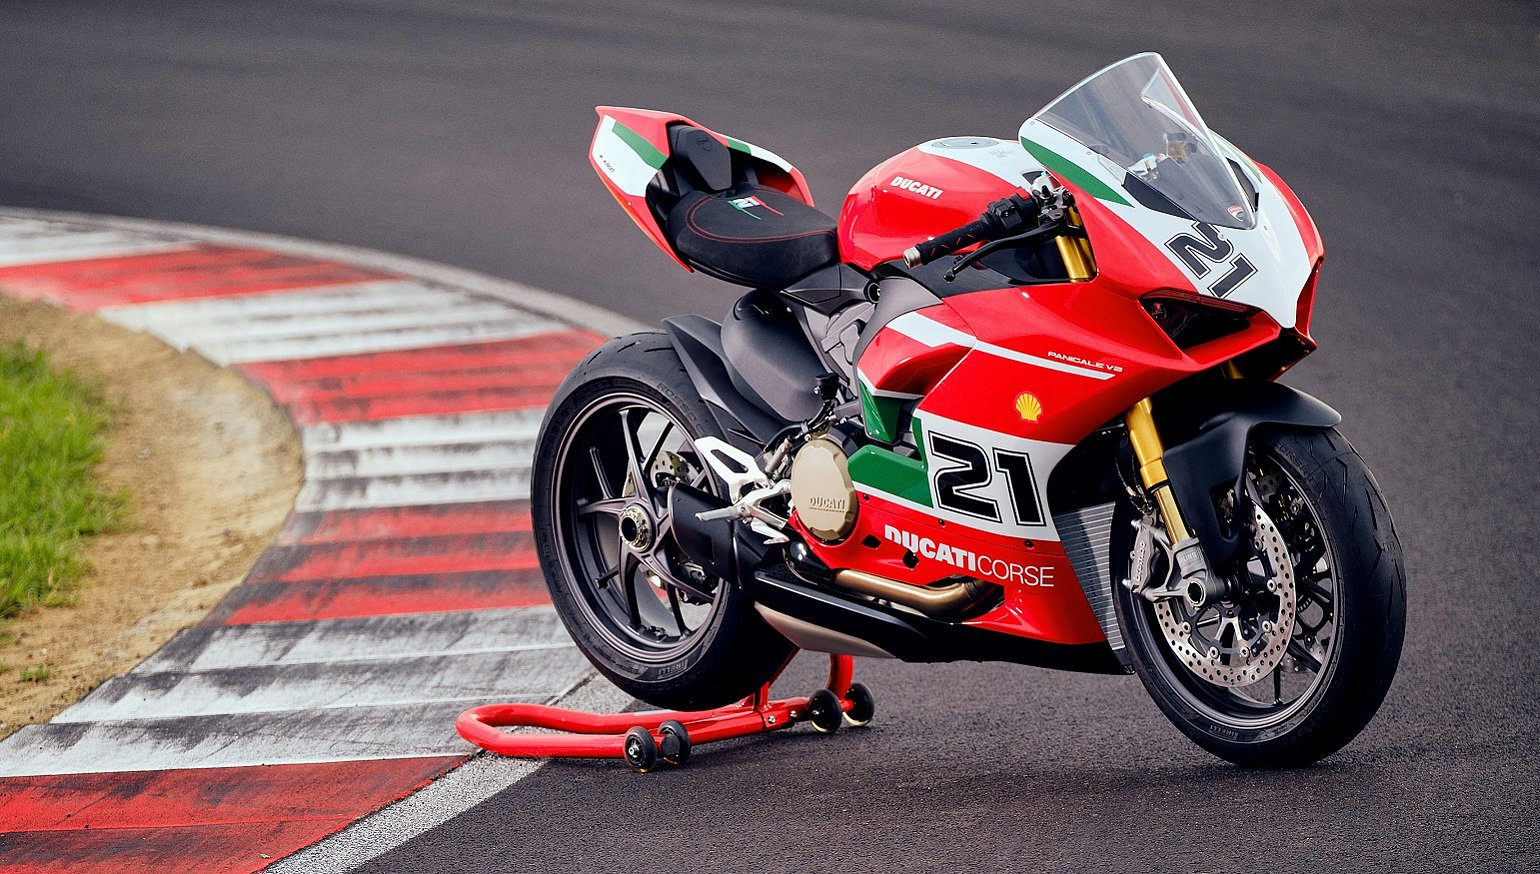 Ducati issues a special edition Panigale V2 to honor Troy Bayliss' first WSBK championship